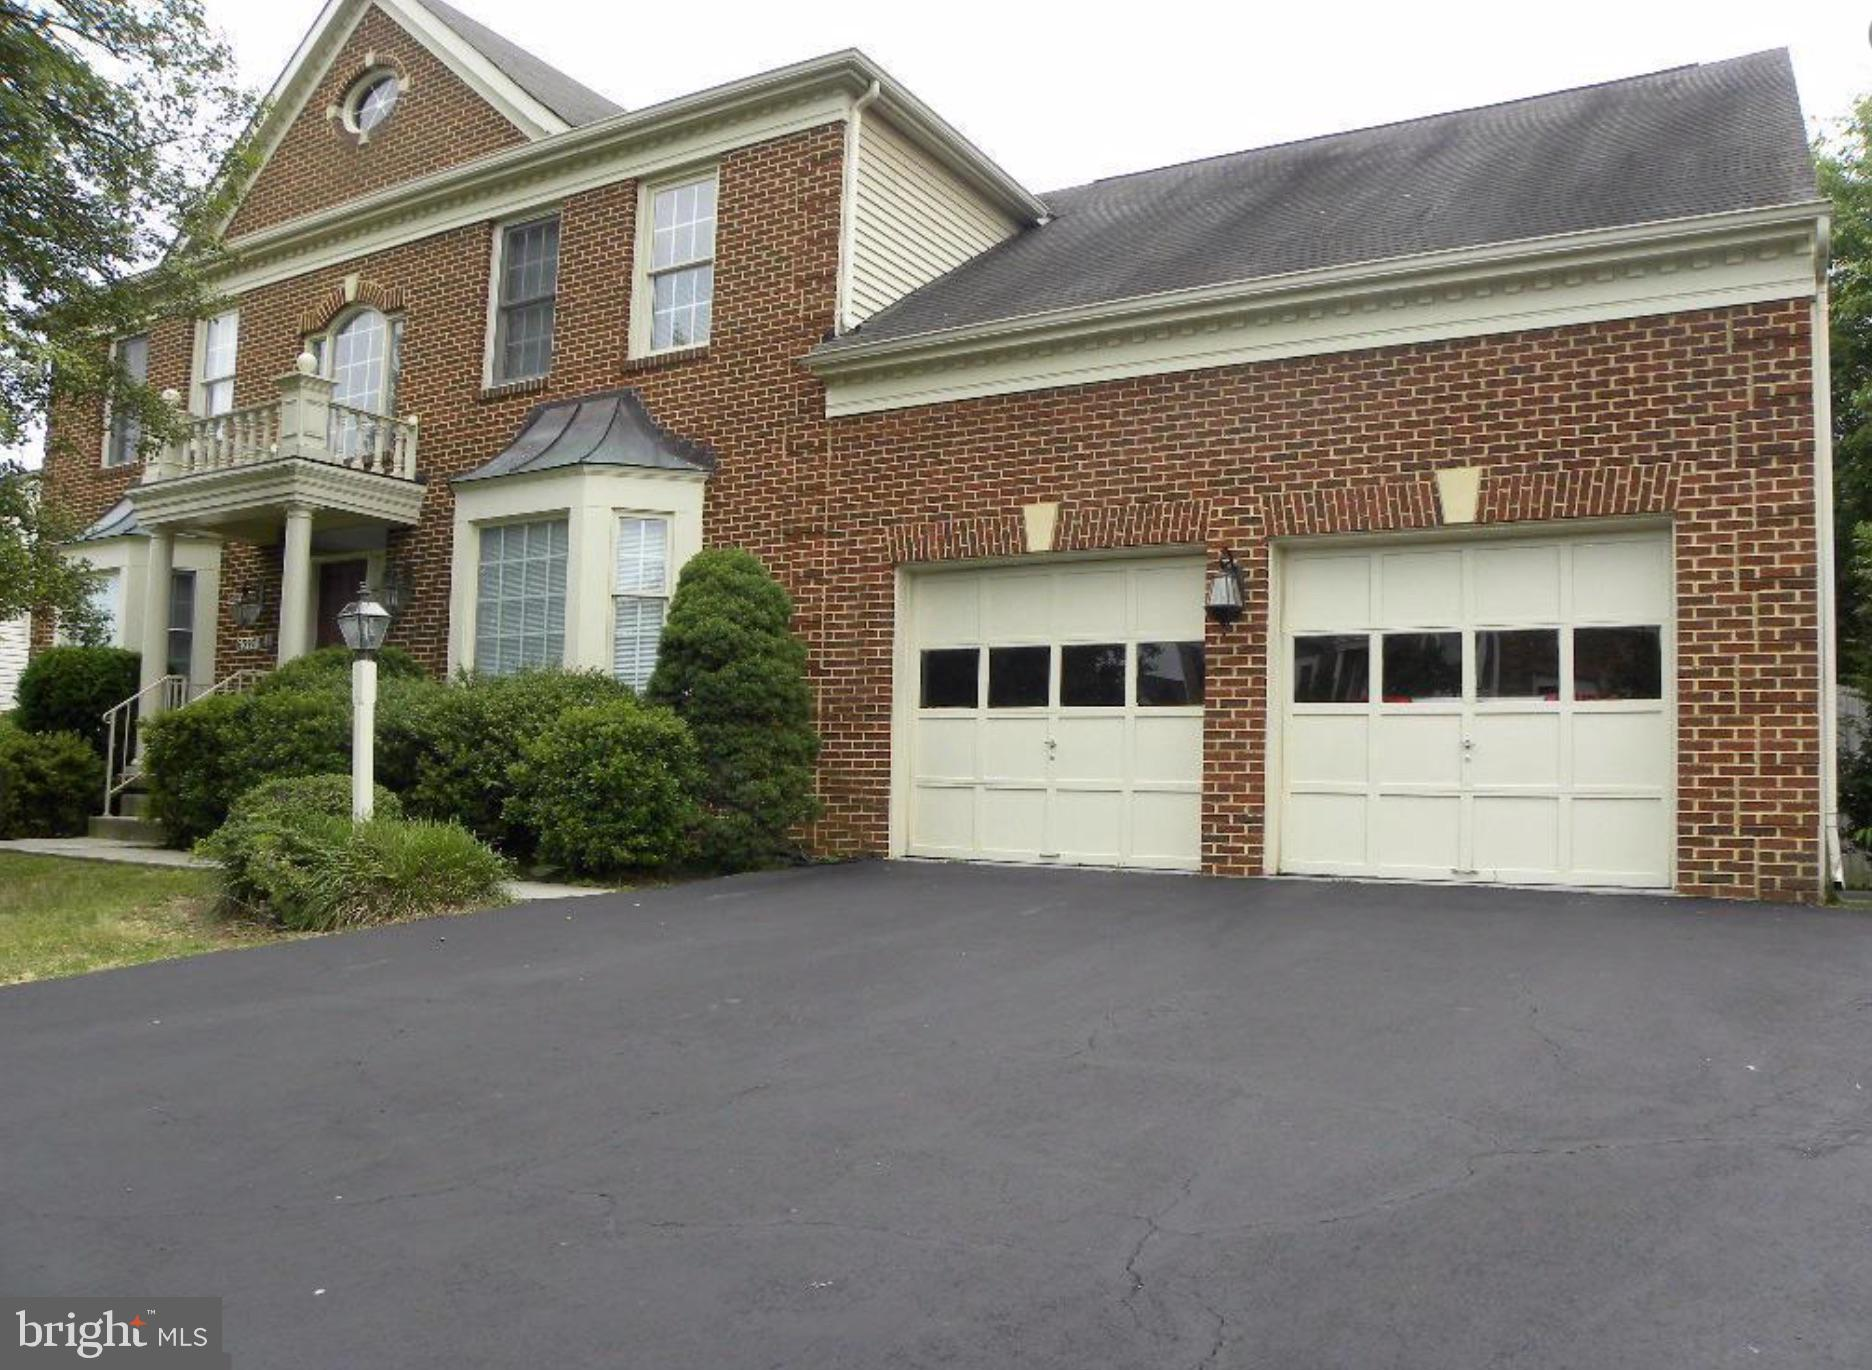 LOVELY 5 BR, 4BA, TOP OF THE LINE MAHOGANY HW FLOORS!, LARGE BRs, 2 FP, GOURMET KITCHEN W/ GRANITE COUNTERS & SS APPL, BEAUTIFUL 2-LEVEL DECK W/GAZEBO & HOT TUB, MAIN LEVEL BR/STUDY W/FBA, LUXURY MA BA W/JETTED TUB & SKYLIGHTS. WONDERFUL LL REC ROOM W/WET BAR & FP. FINISHED BASEMNET WITH WALKOUT. BRAND NEW ROOF WITH 10 YEAR WARRANTY, HOME WARRANTY AND GREAT LOCATION.